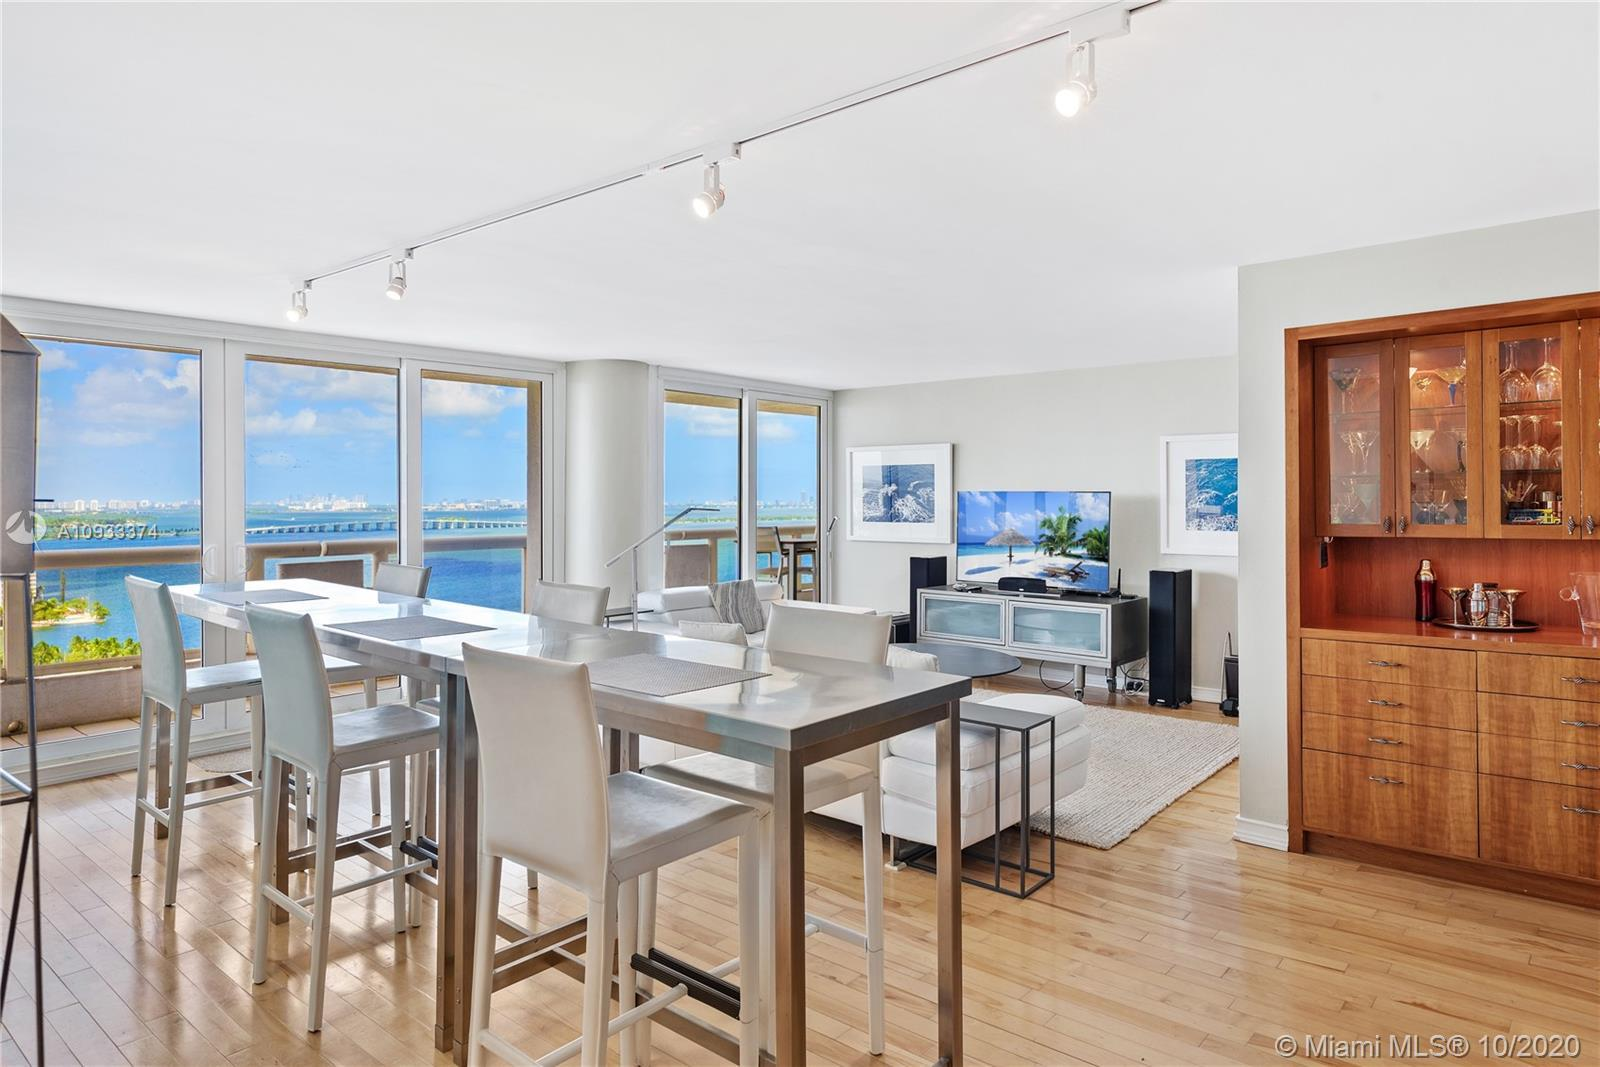 A perfect Miami retreat to relax and enjoy panoramic views. Situated in The Grand, an ideally locate